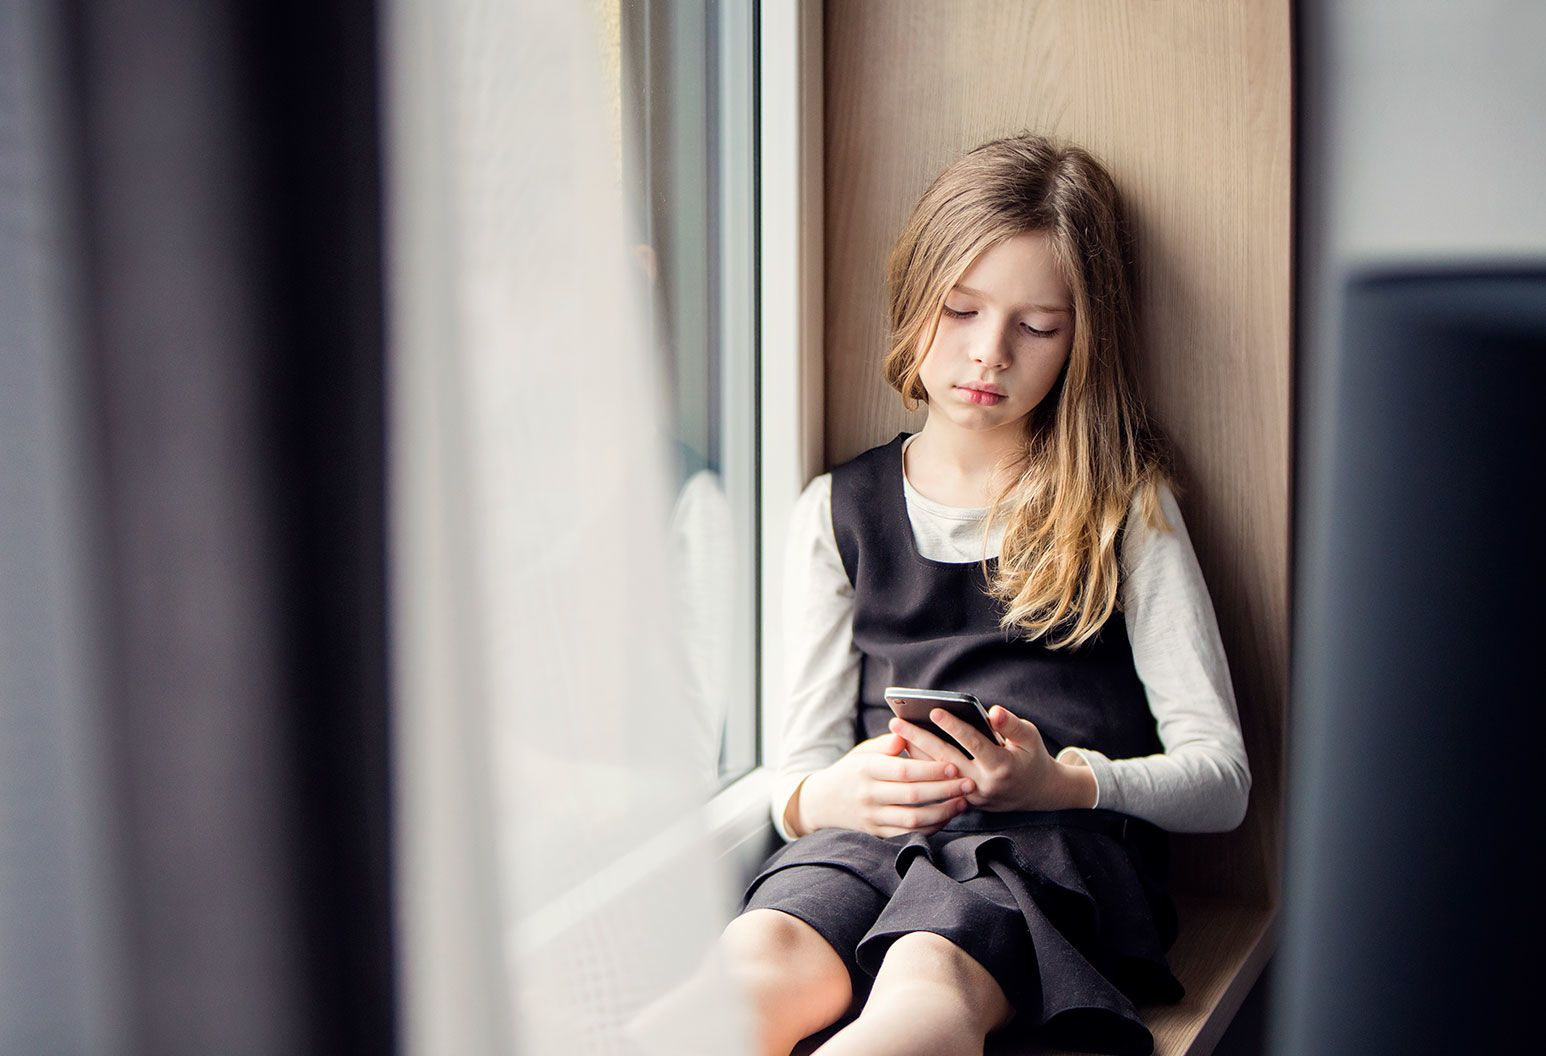 A girl in a grey shirt and black dress sits by the windowsill looking staring sadly into her phone.